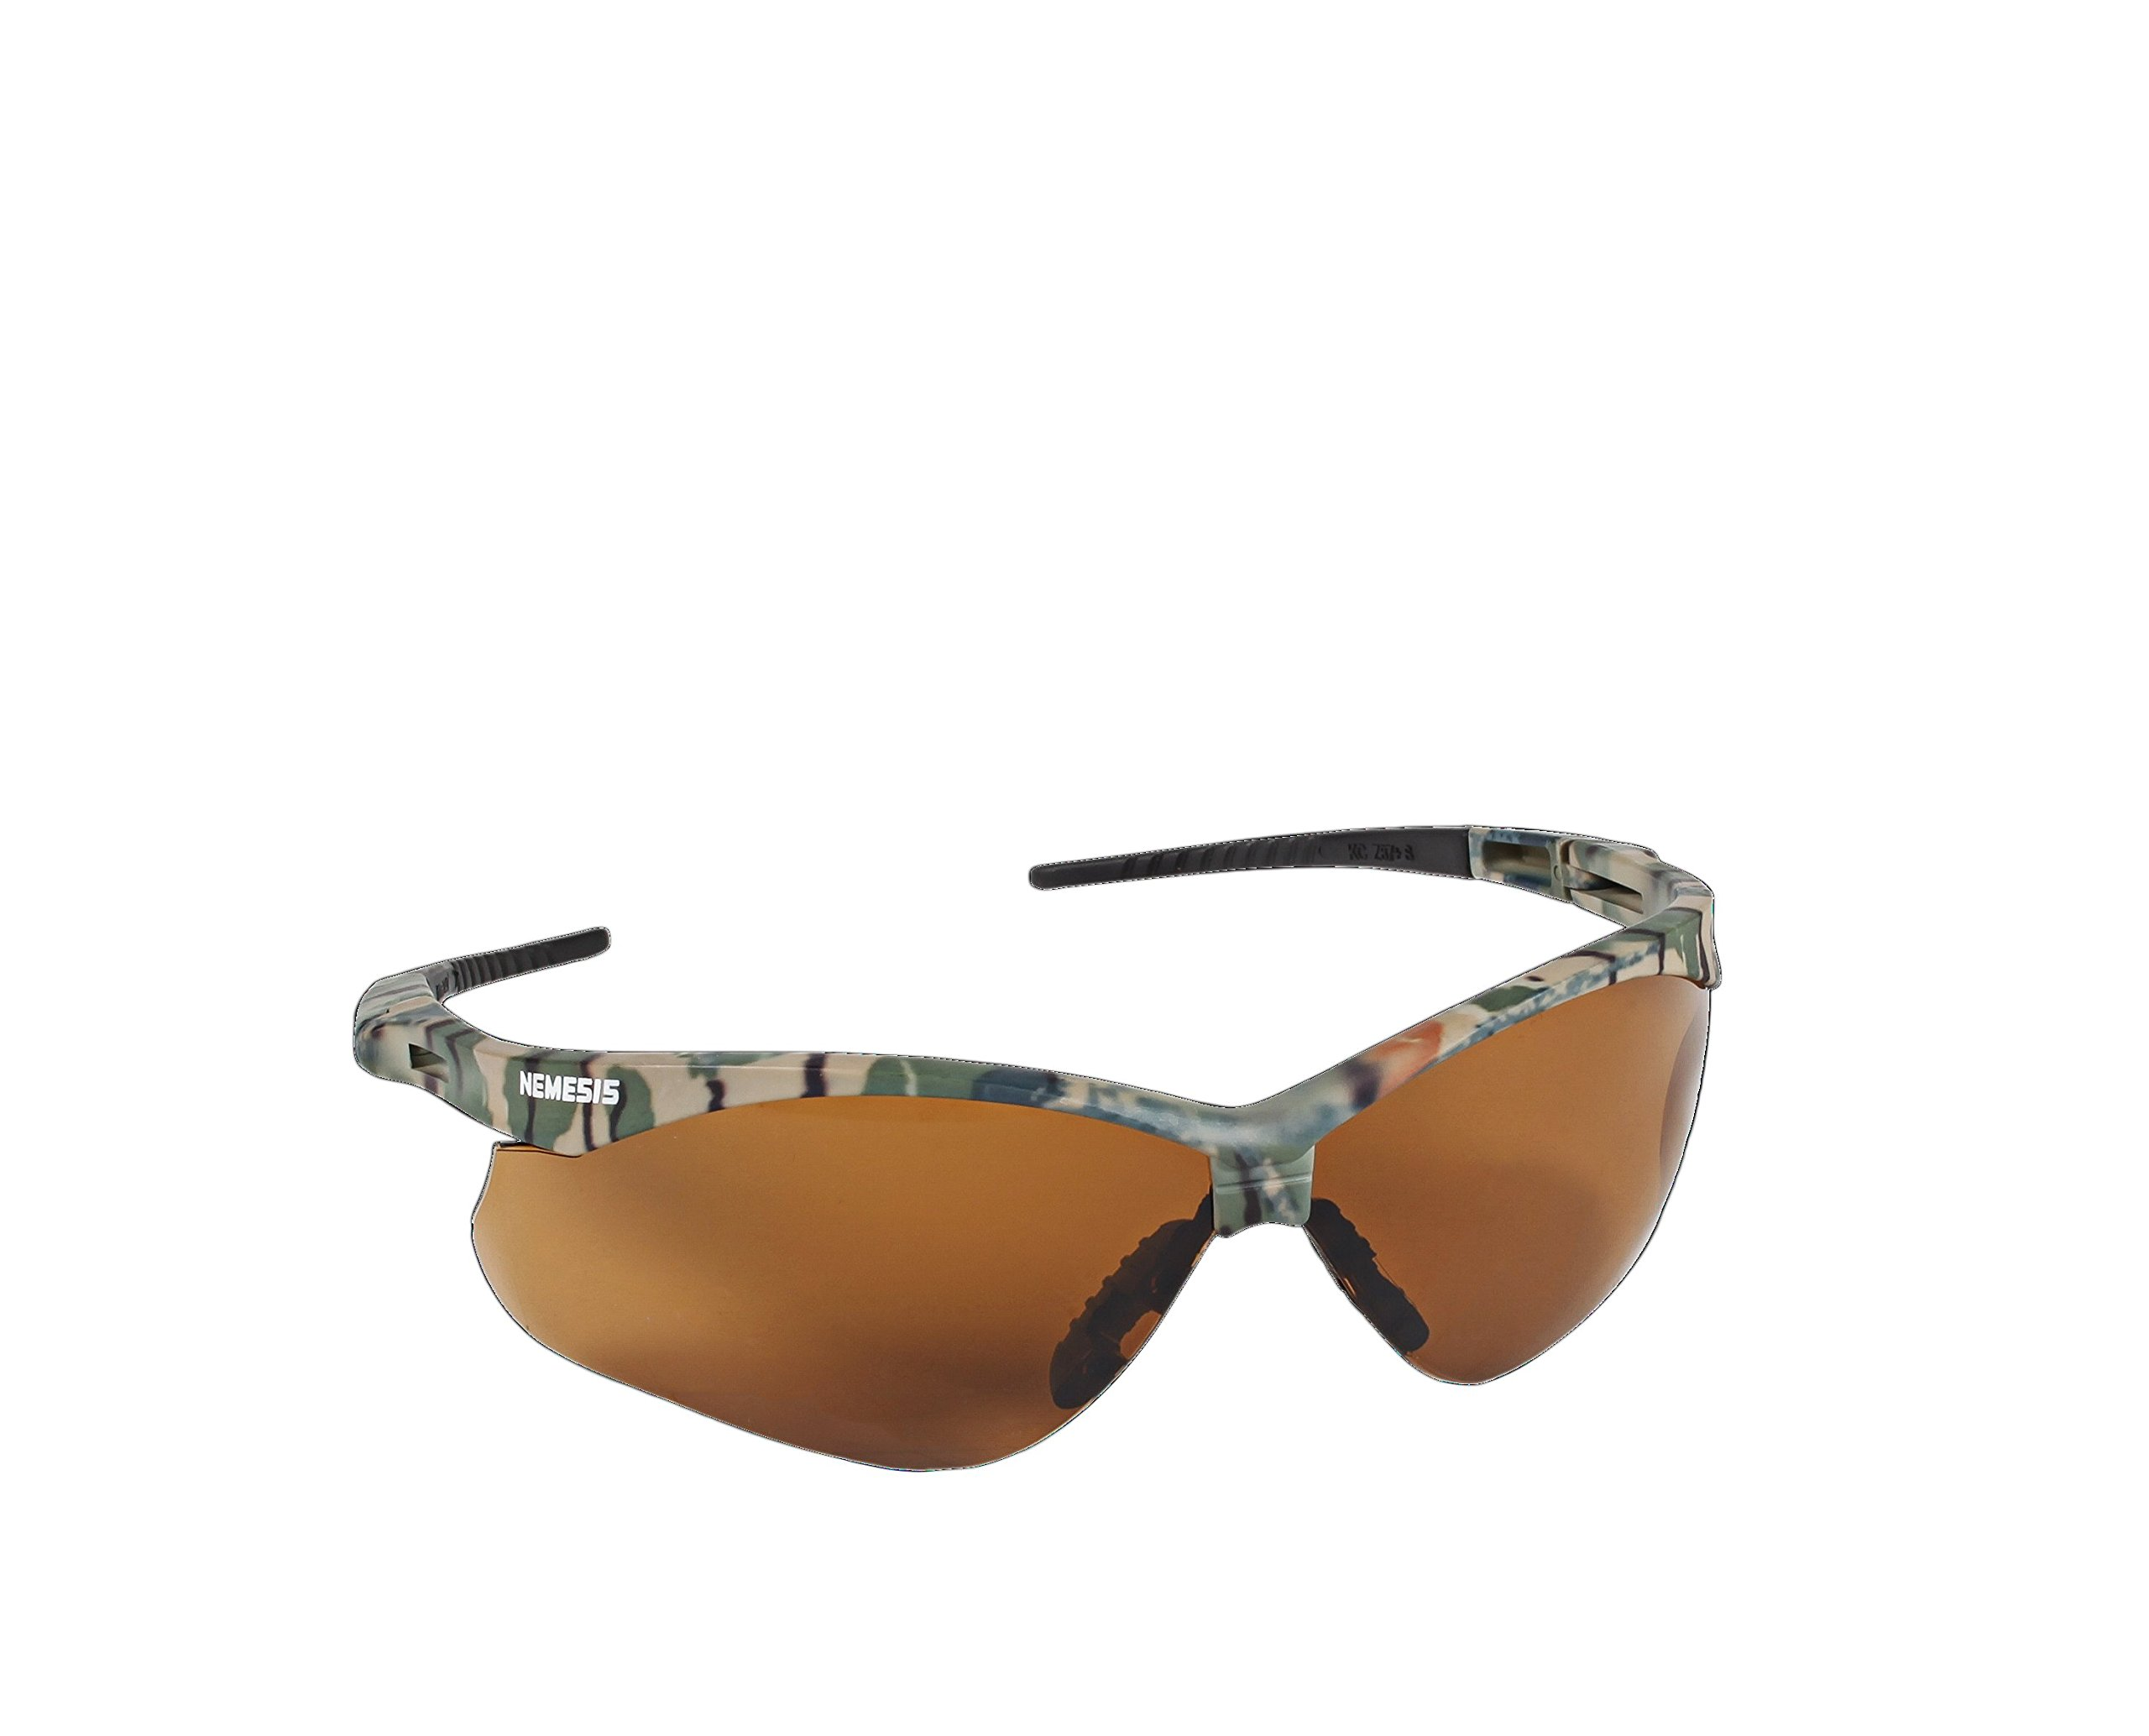 Jackson Safety 20386 V30 Nemesis CSA Safety Glasses, Bronze Lenses with Camo Frame (Pack of 12) by Jackson Safety